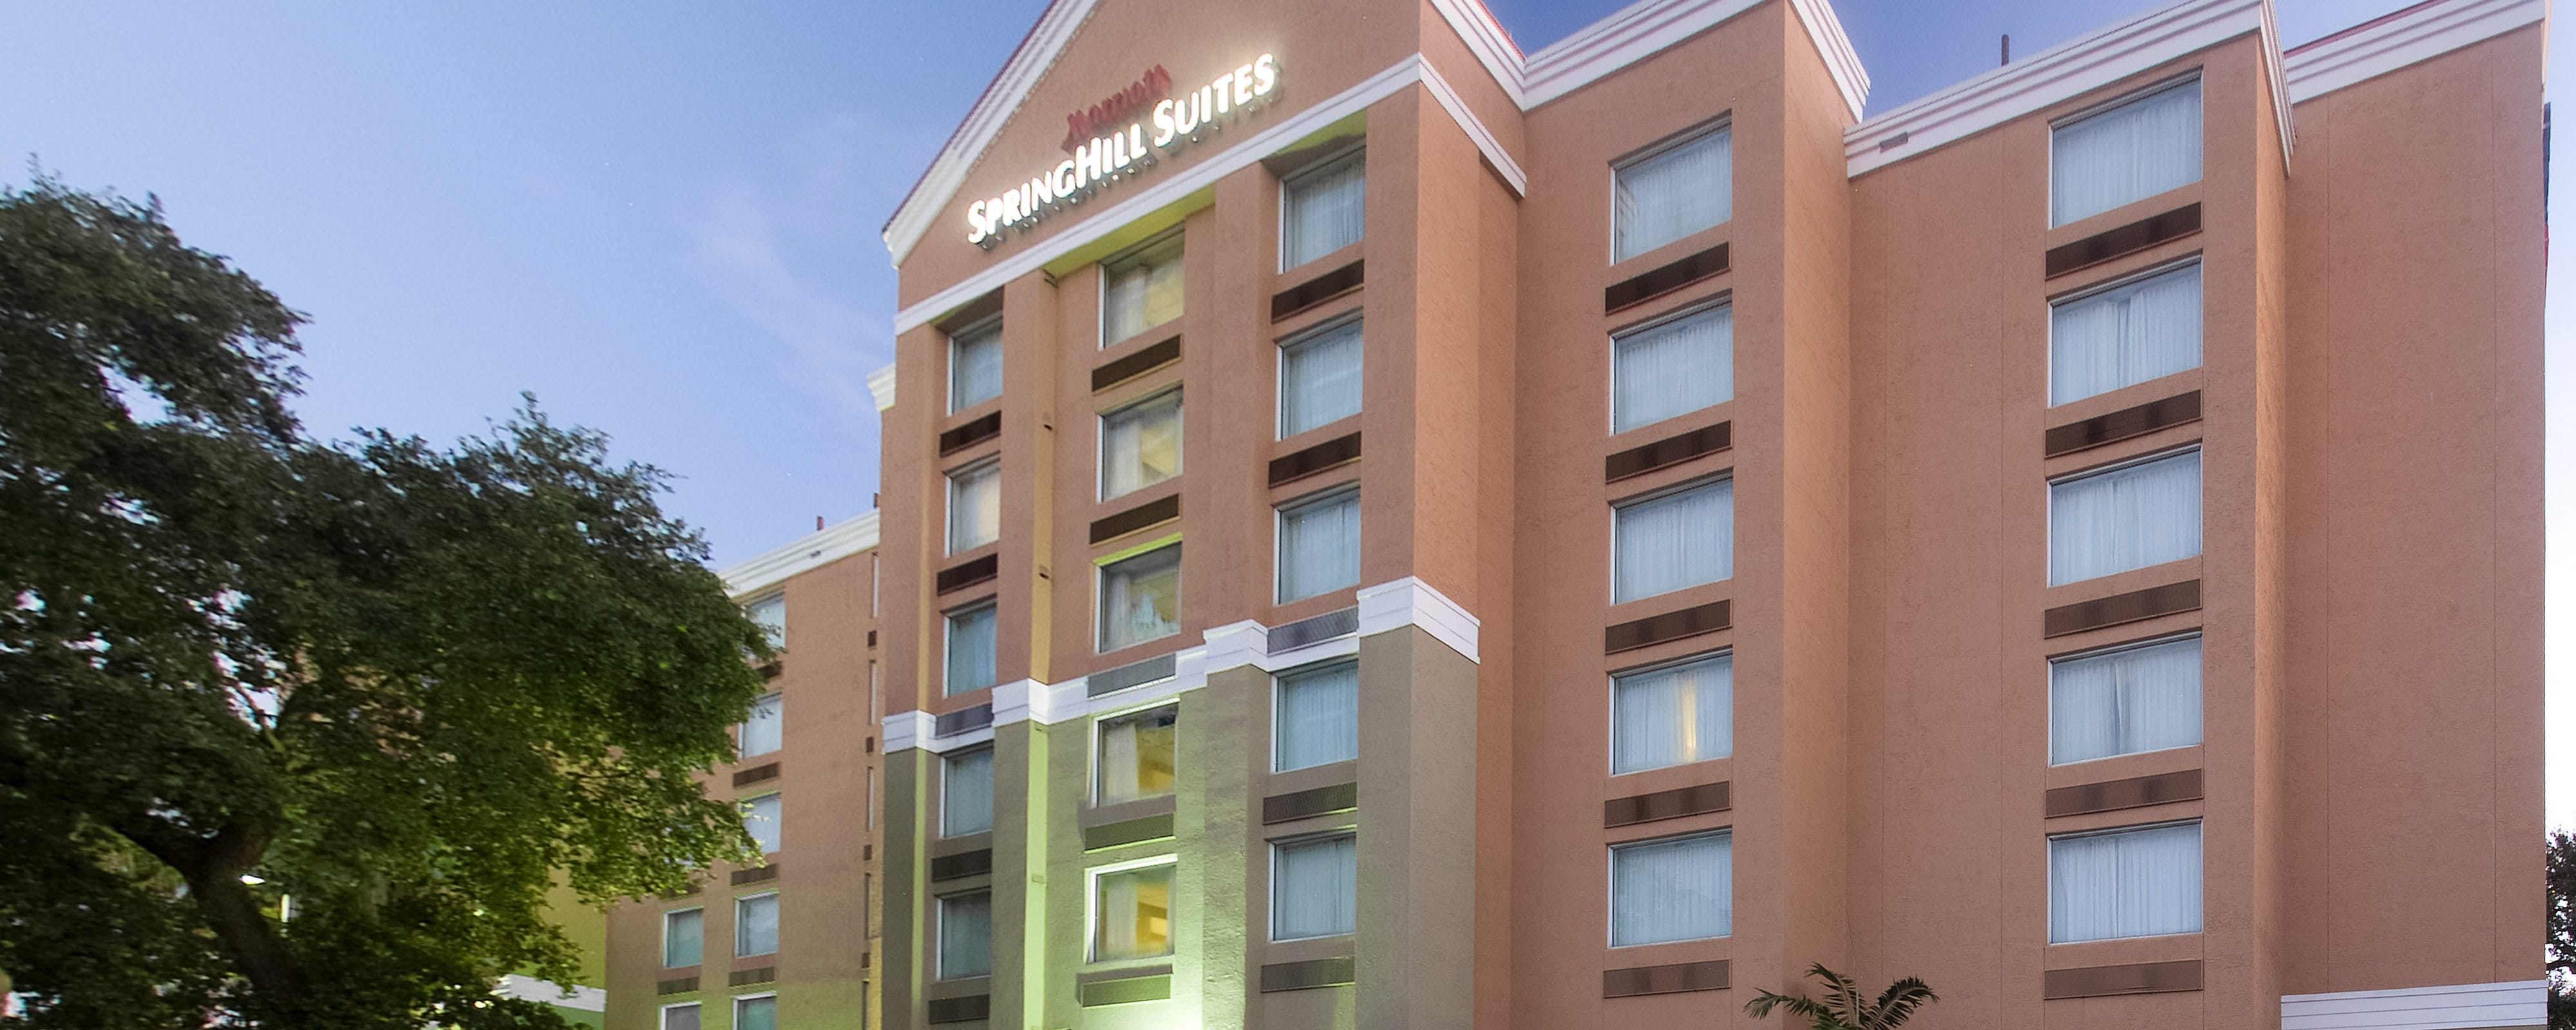 Springhill Suites Fort Lauderdale Hotels With Airport Shuttle In Ft Lauderdale